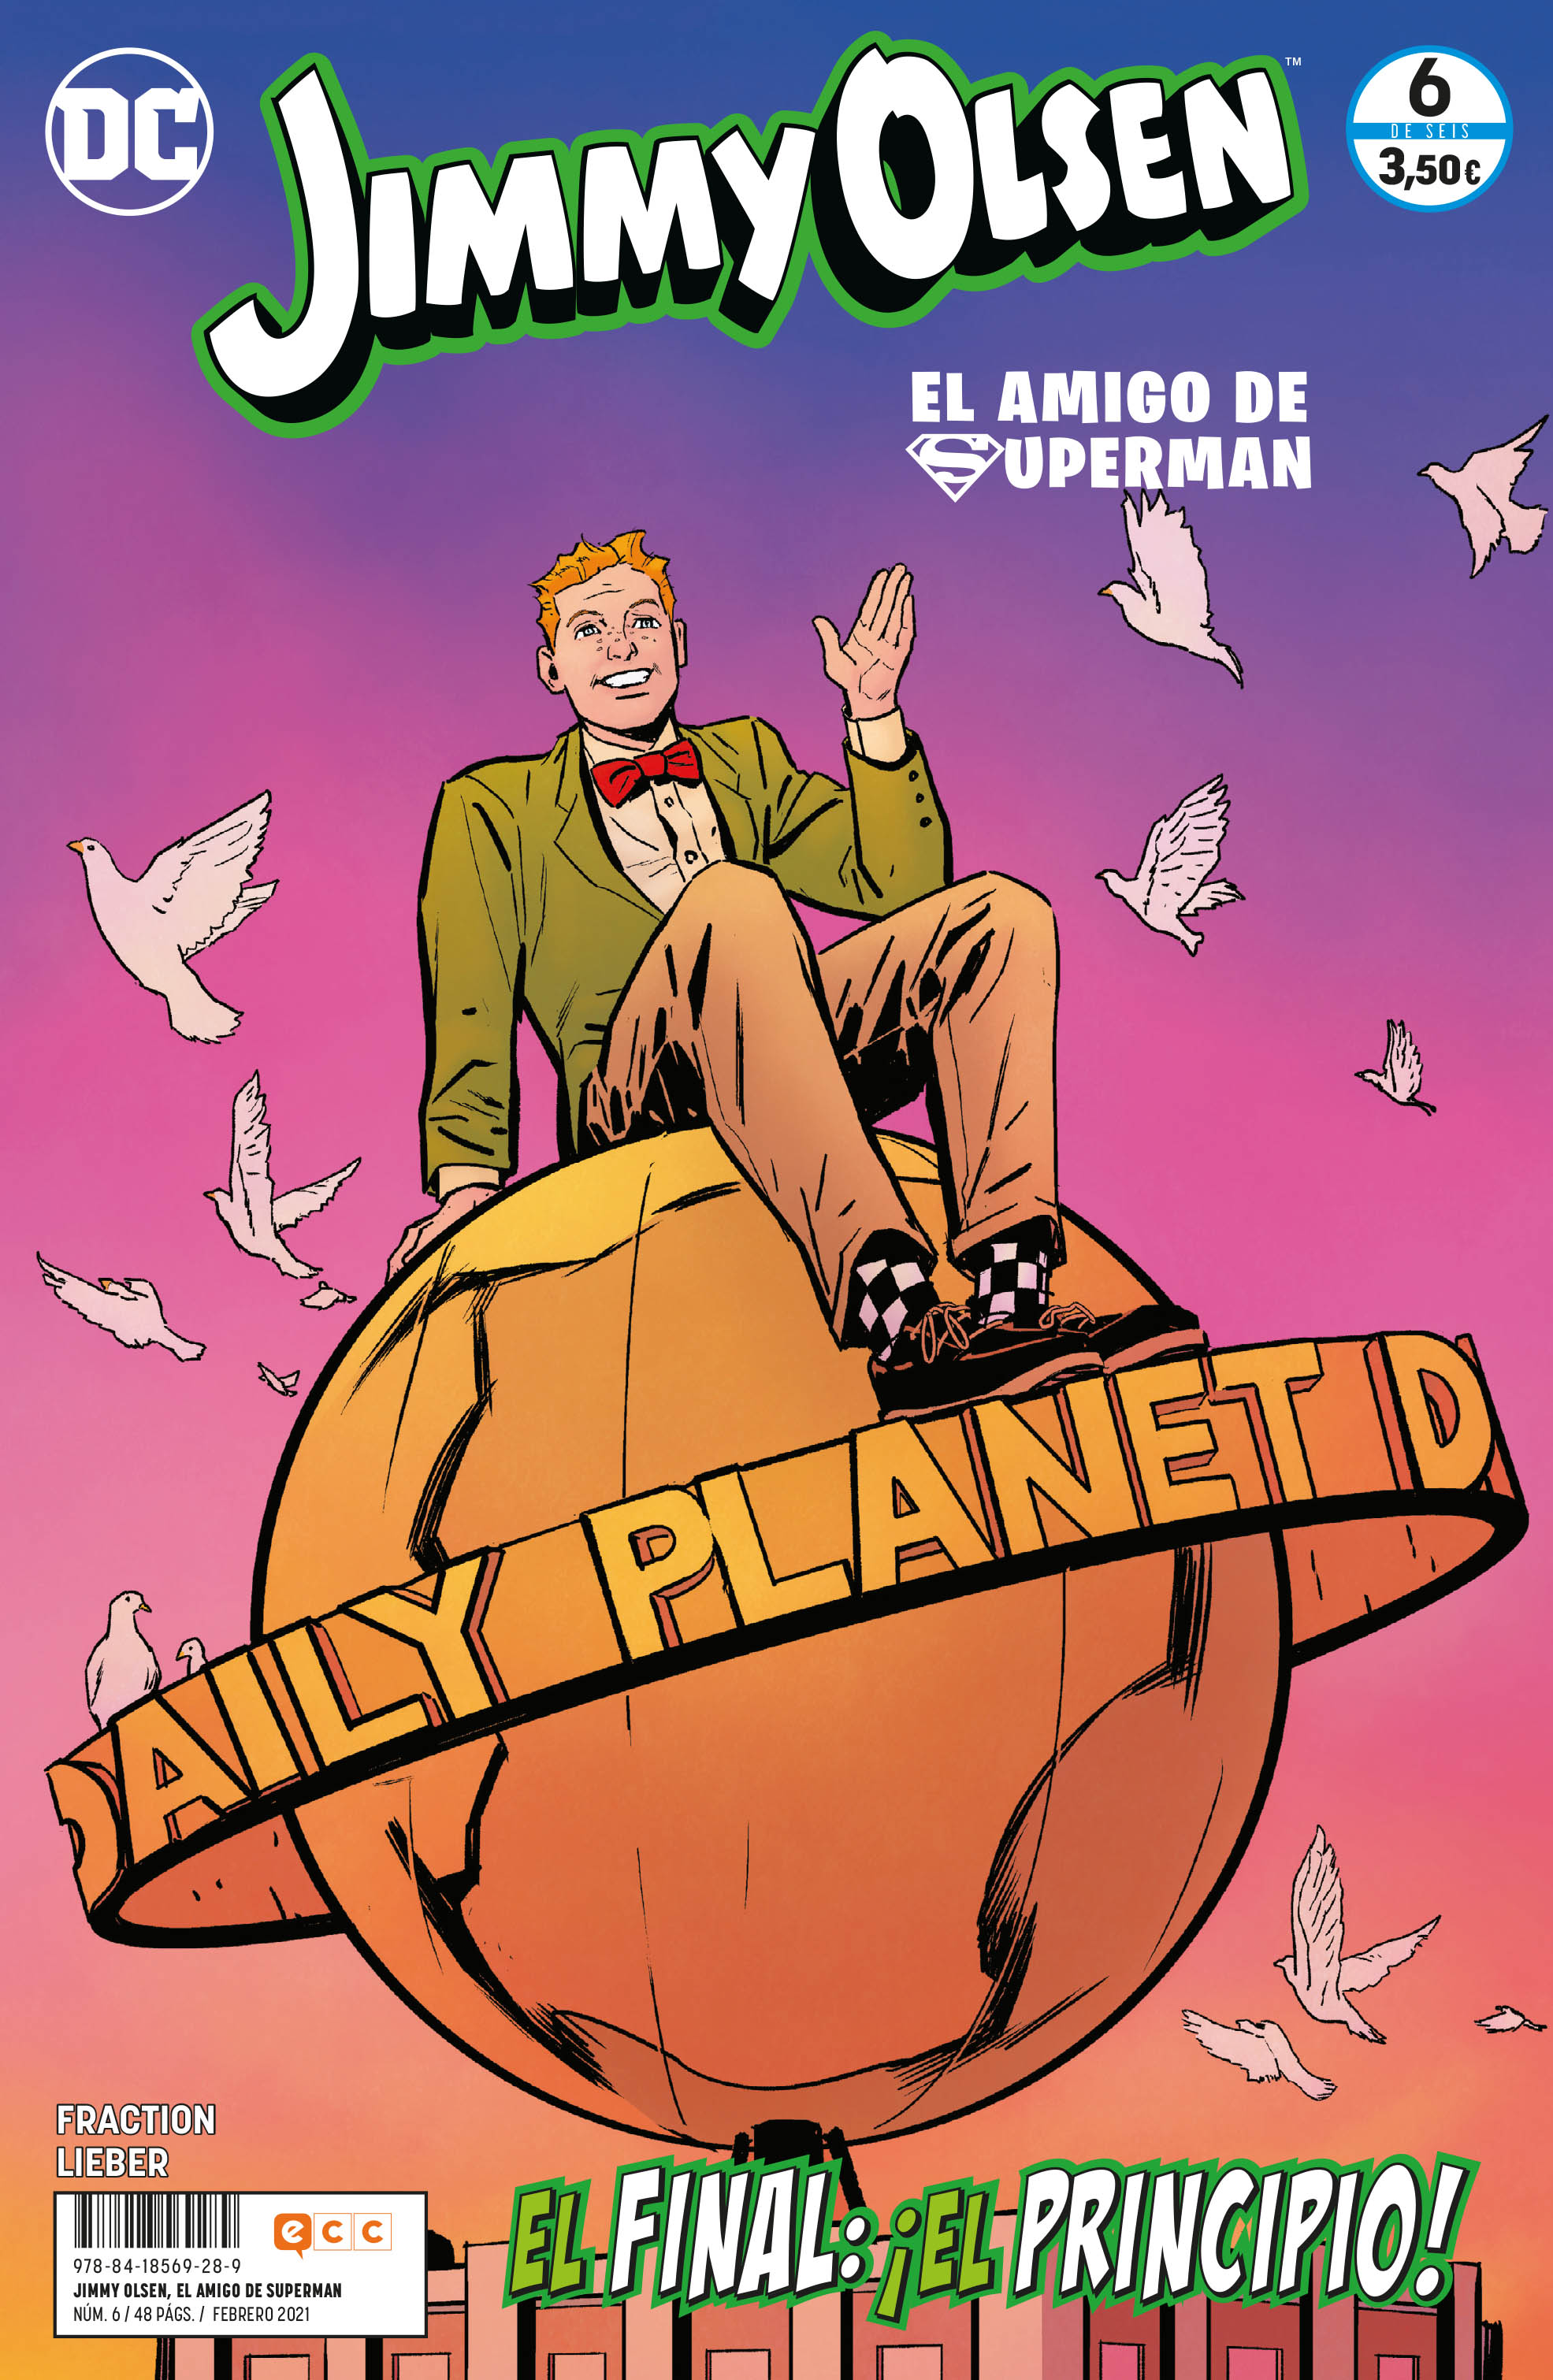 Jimmy Olsen, el amigo de Superman núm. 06 de 6